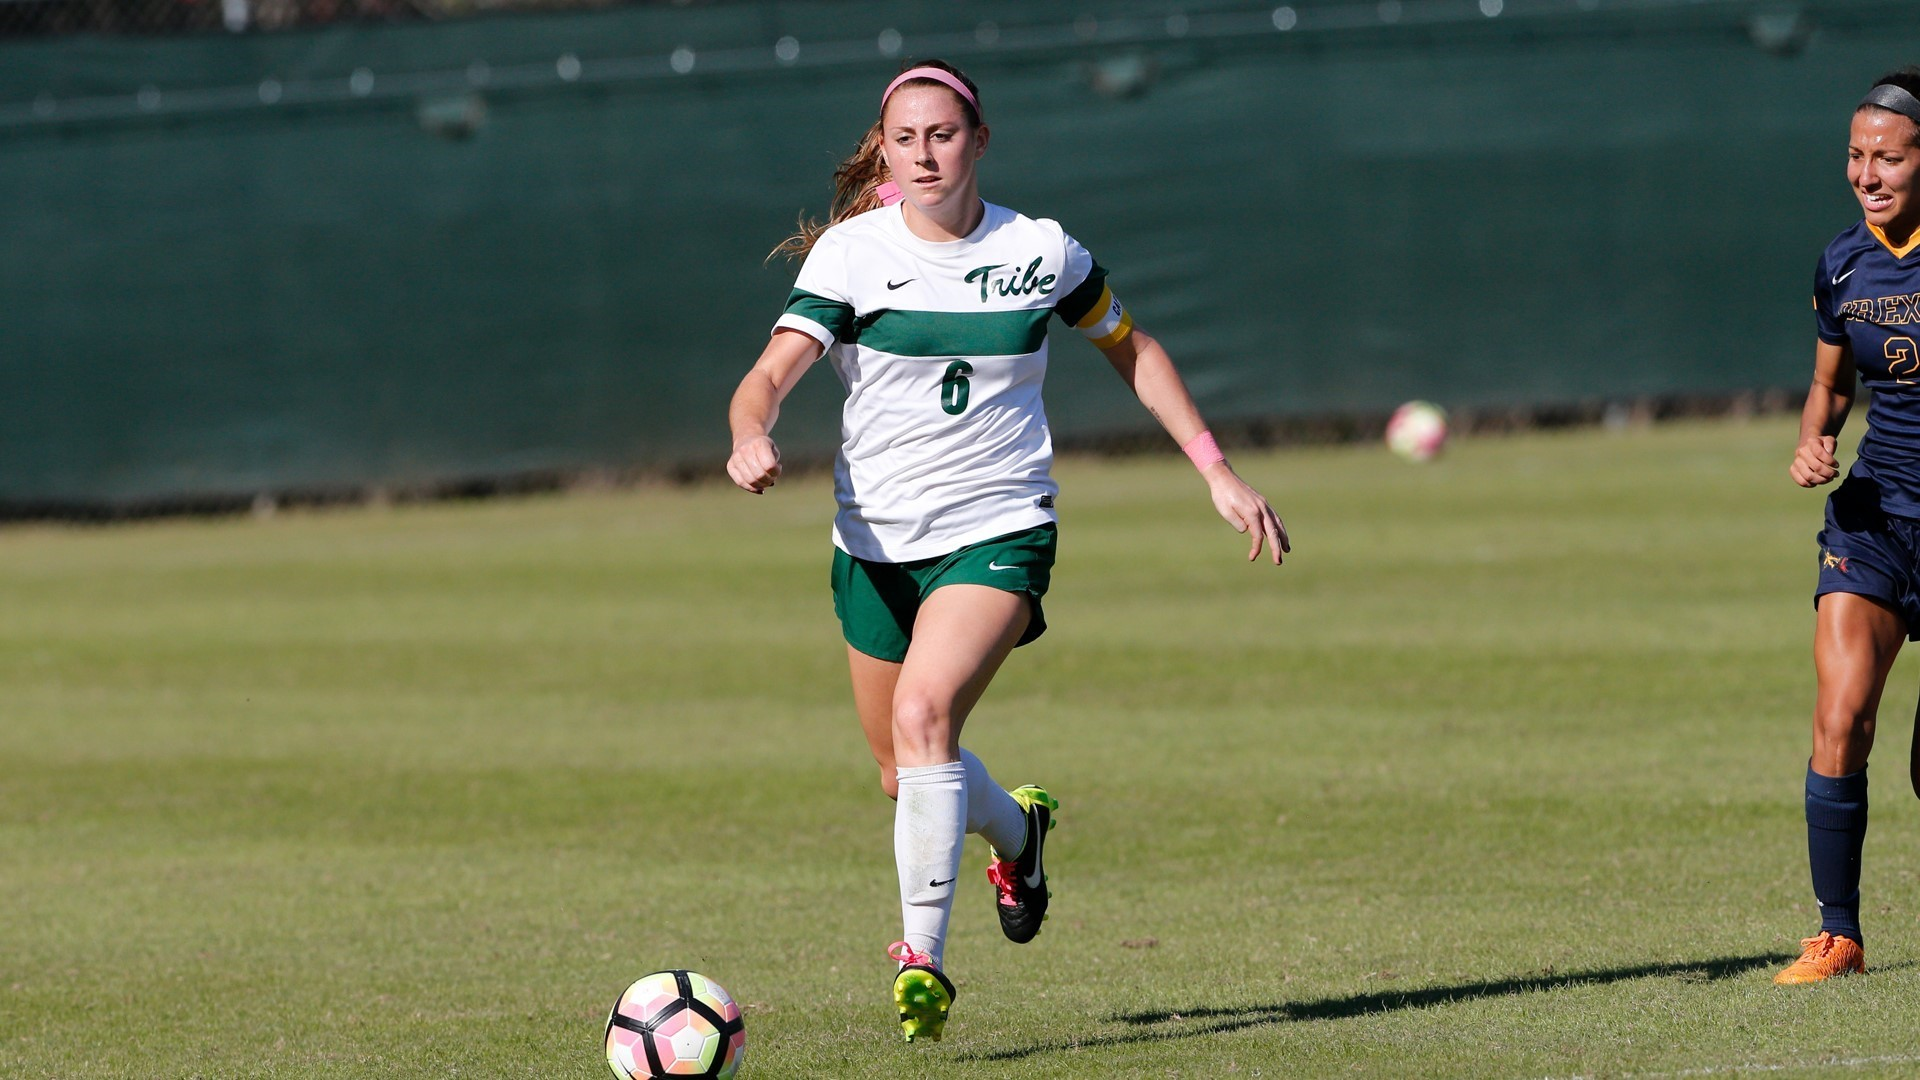 Former Women's Soccer Standout Clara Logsdon Named a Nominee for the NCAA Woman of the Year Award